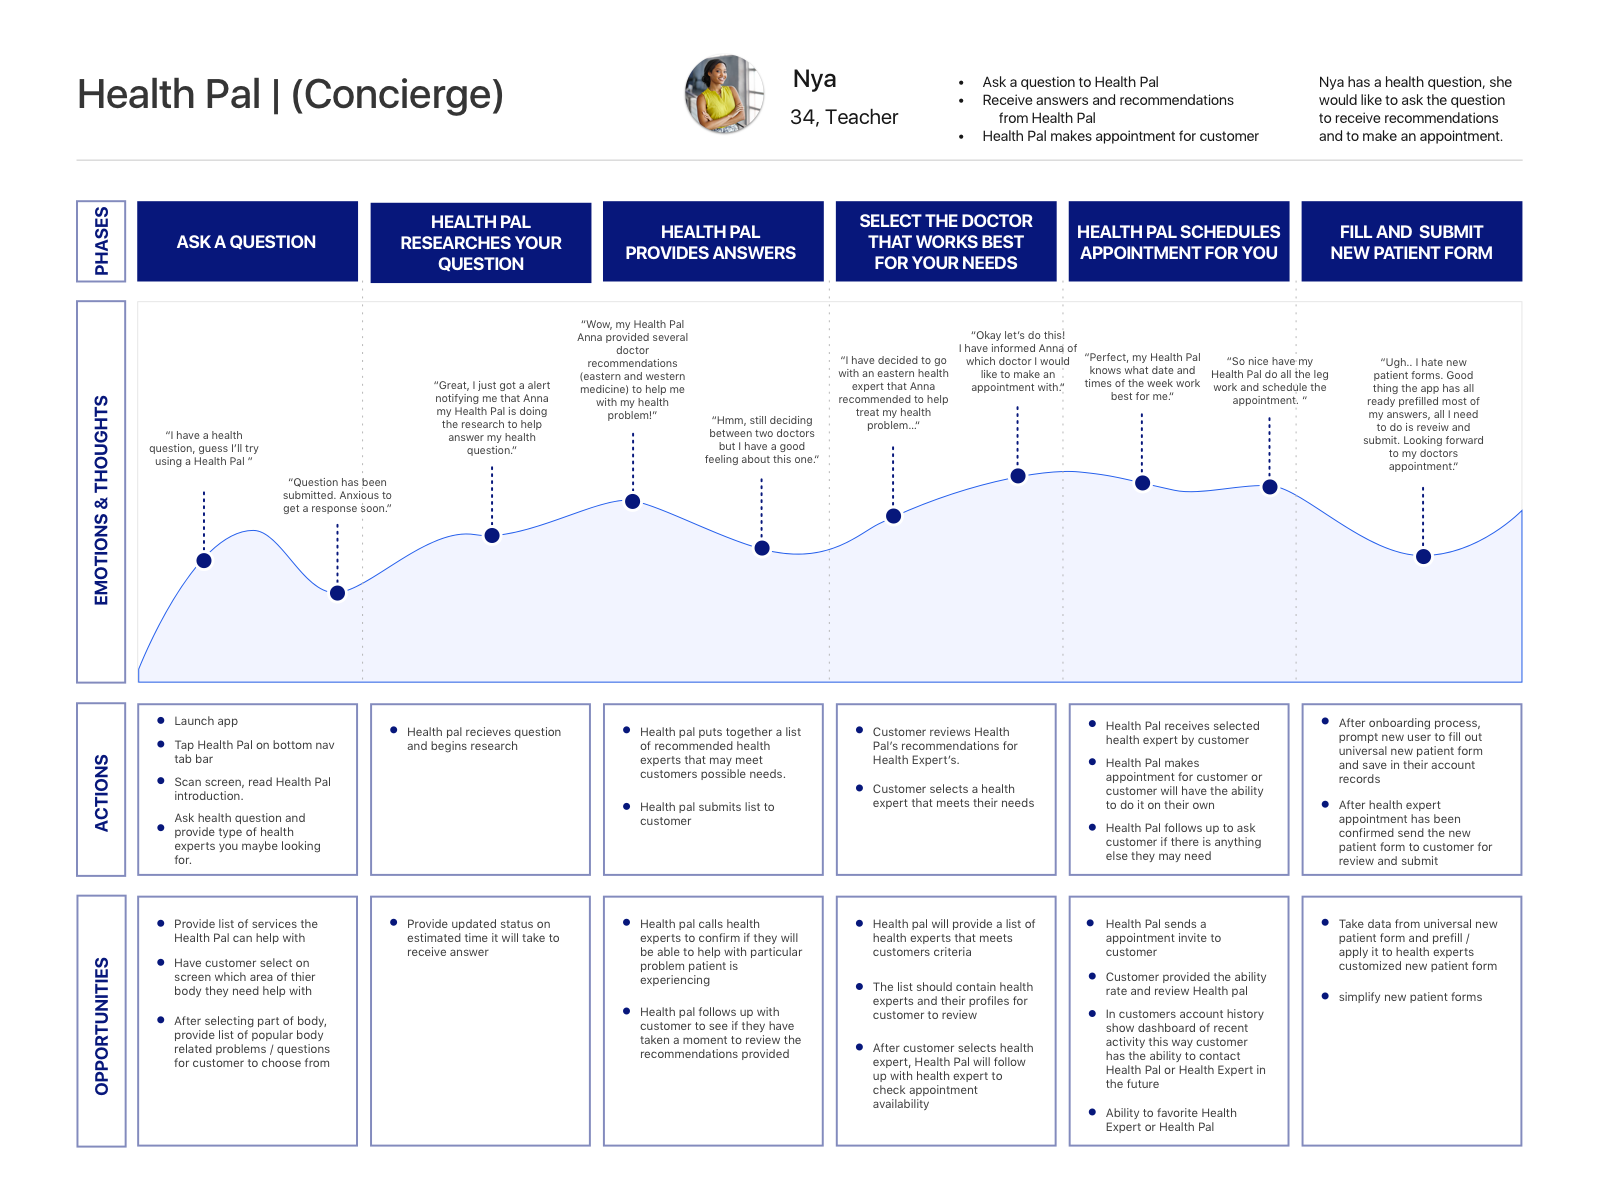 User Journey Map for Health Pal